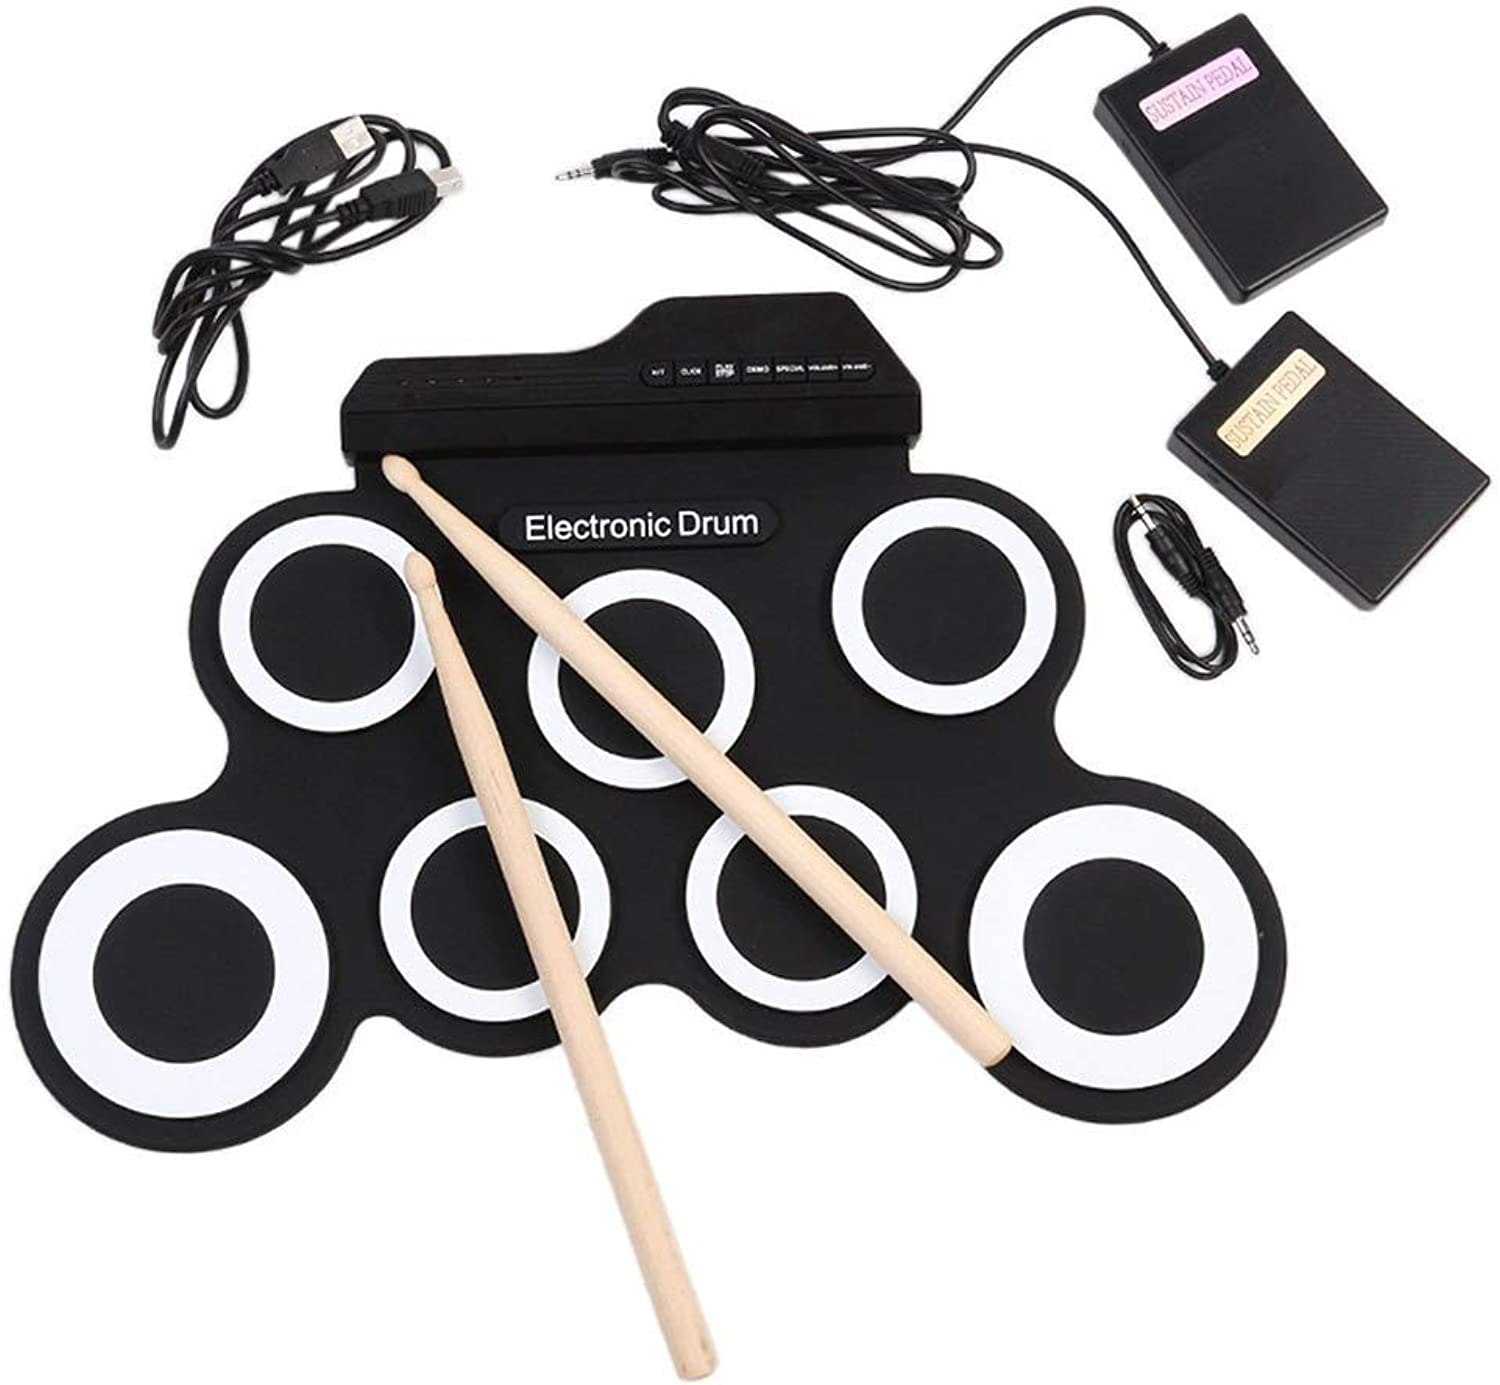 Janify Portabl Electronic Drum Set Roll Up Drum Practice Pad with Drumsticks for Kids,White